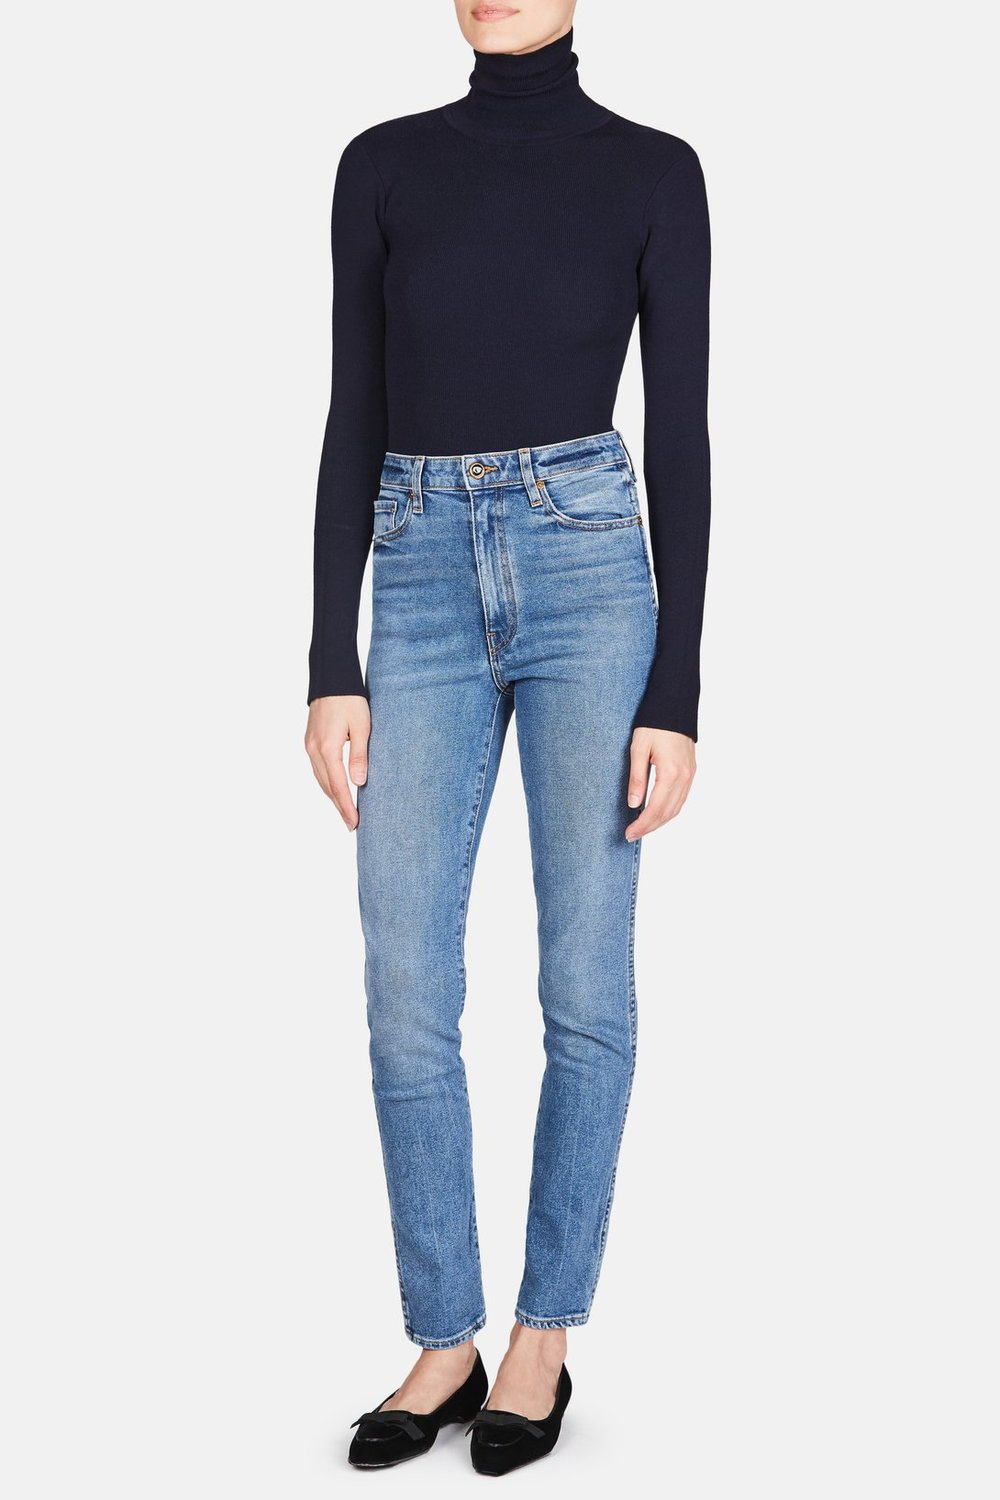 Khaite Turtleneck, Was $595 - Now $238